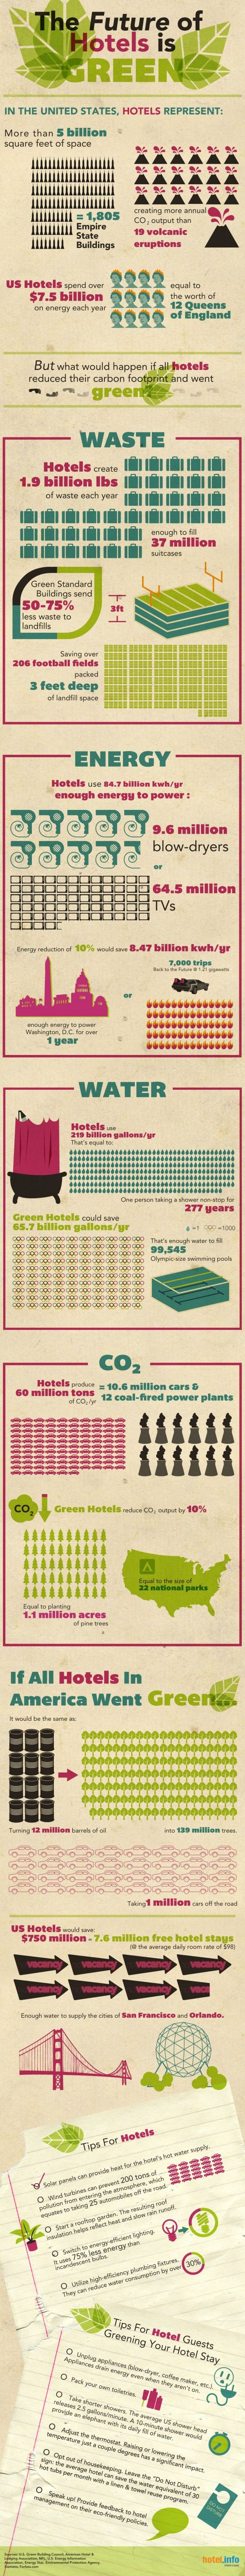 if us hotels went green travel lightly great info graphic with stats and tips too